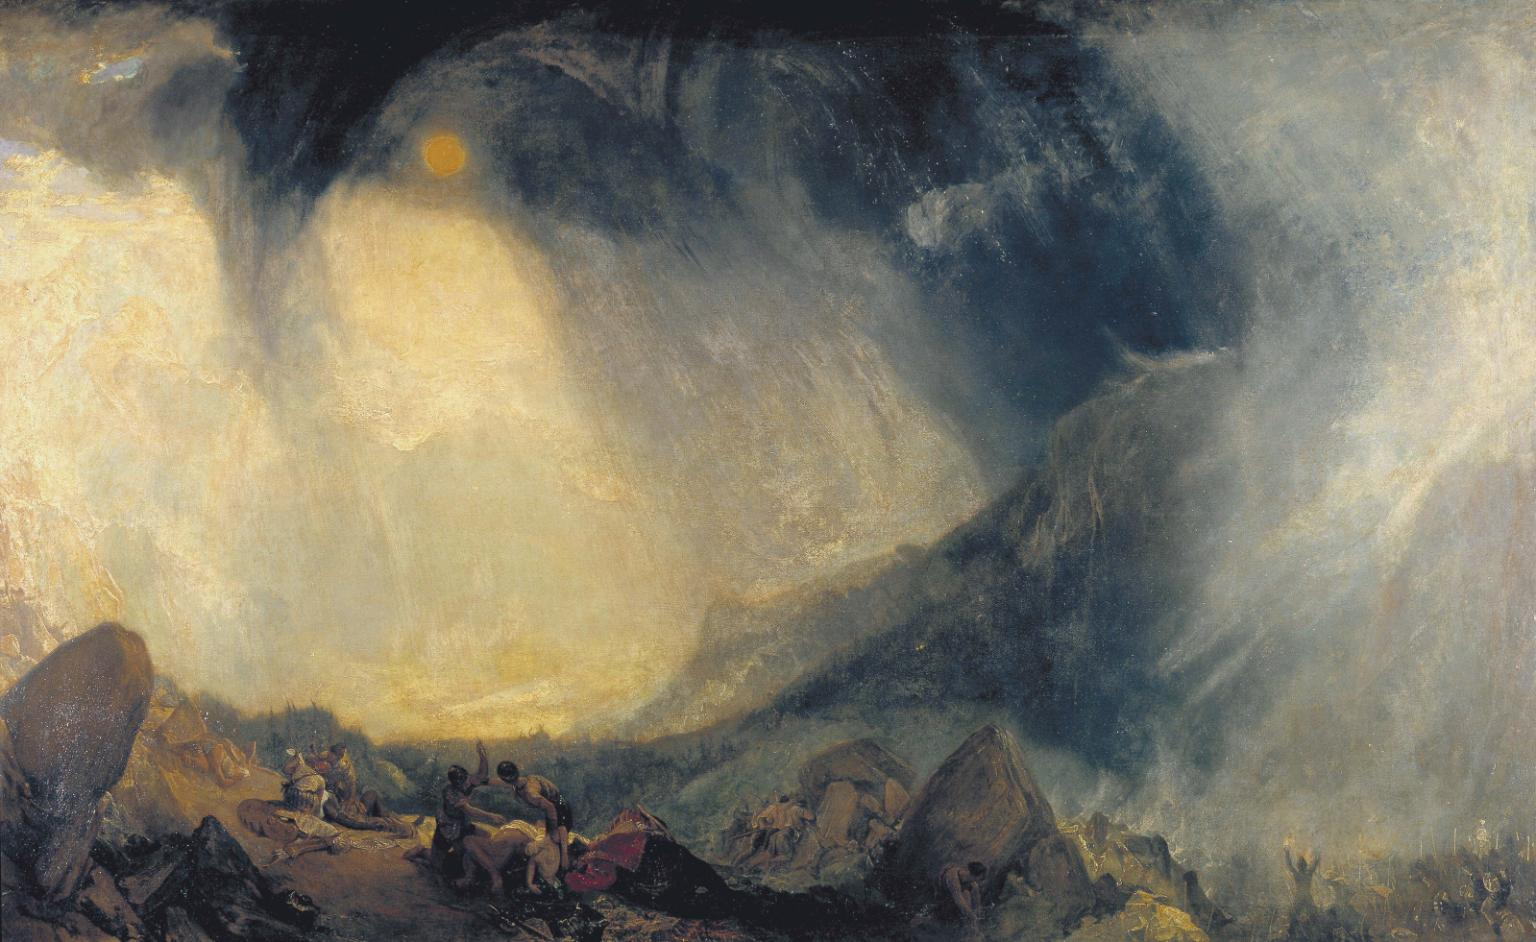 Snow Storm: Hannibal and his Army Crossing the Alps, exhibited 1812, Joseph Mallord William Turner, huile sur toile